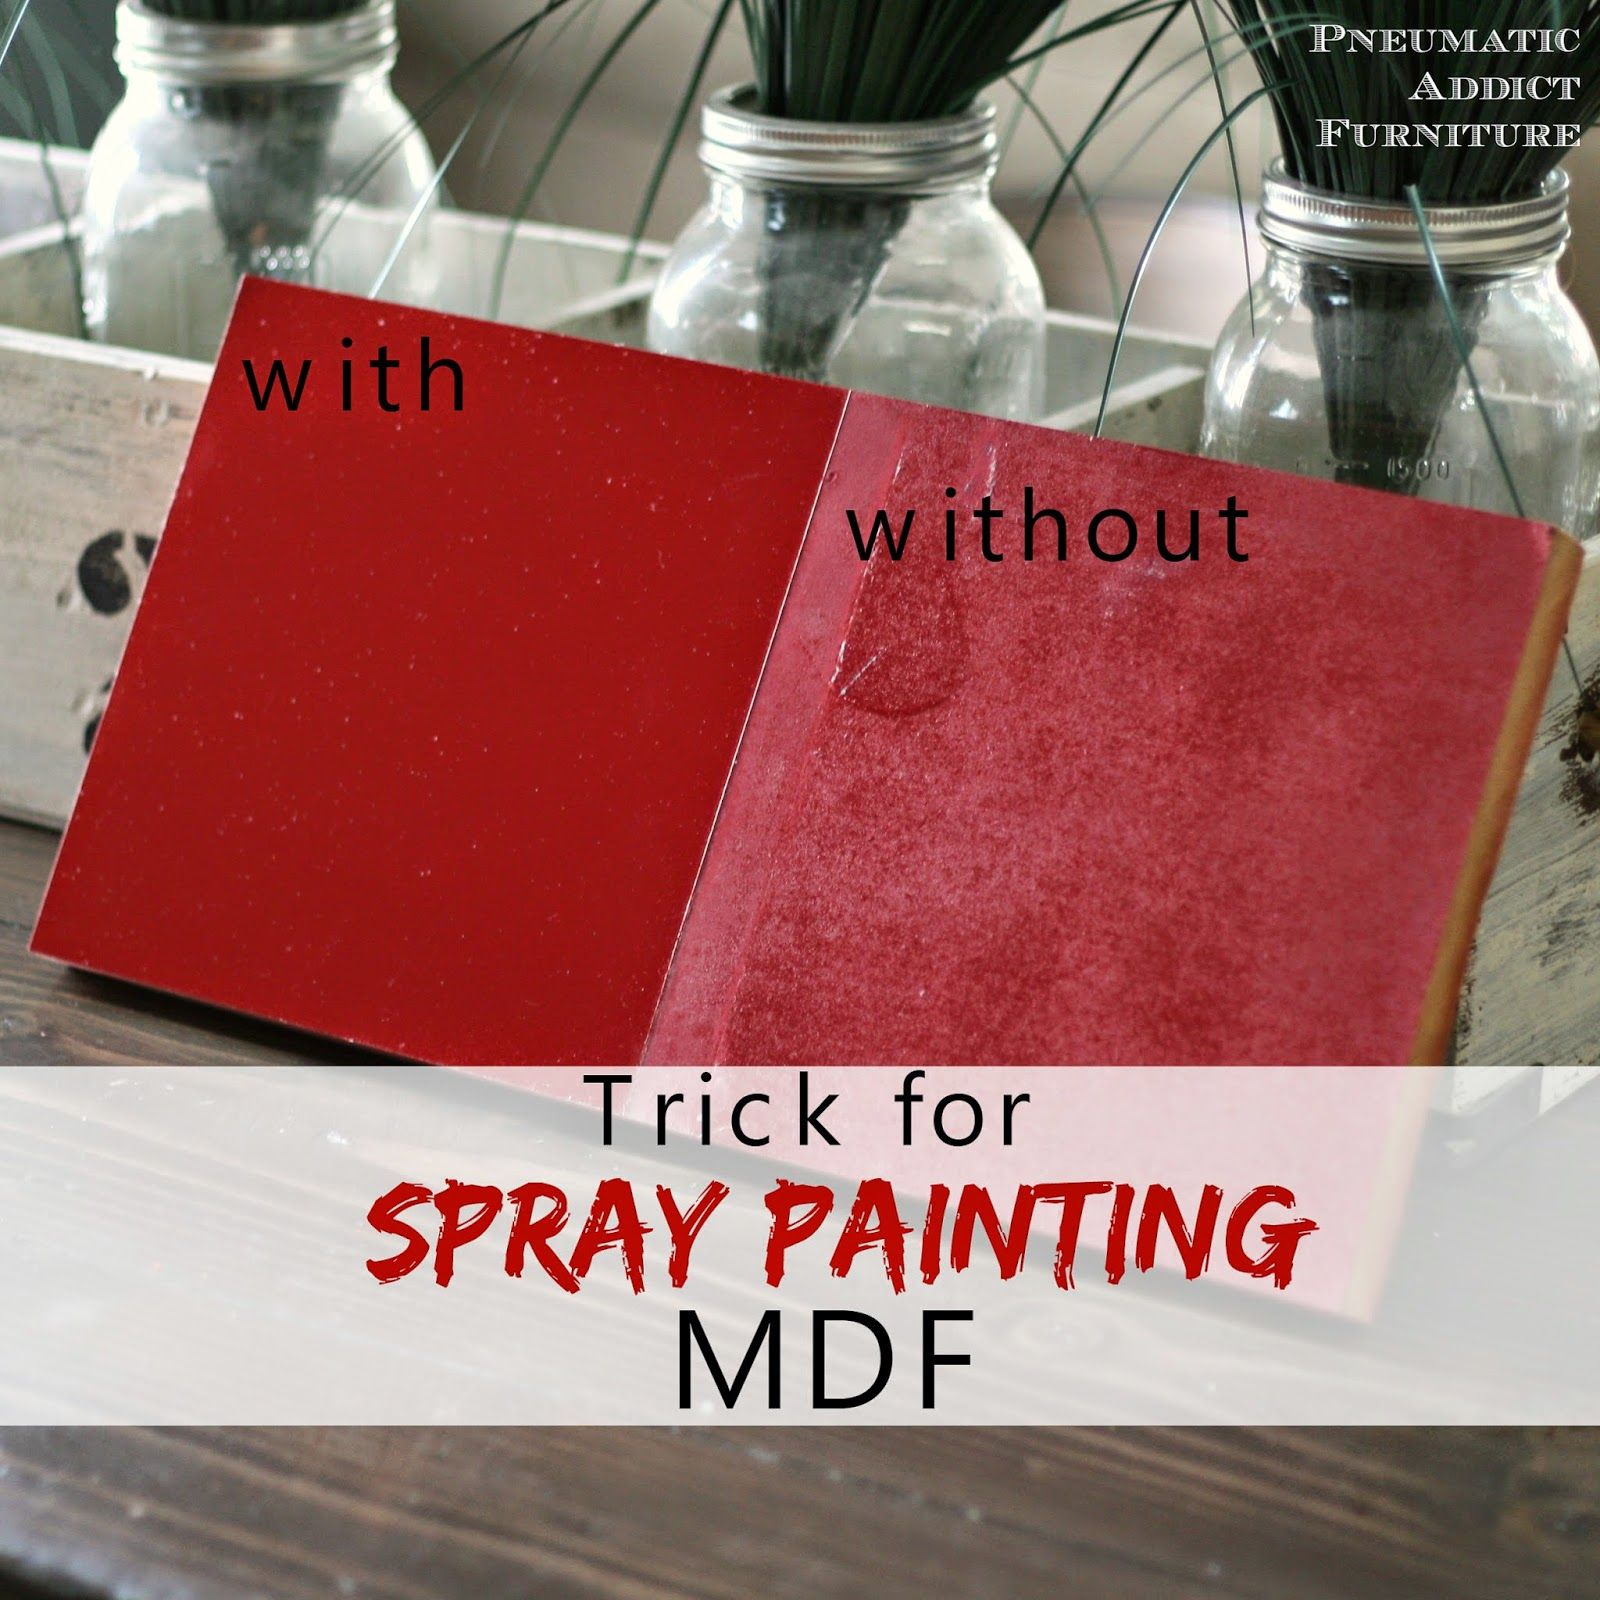 spray painting painting tips spray paint projects diy projects paint. Black Bedroom Furniture Sets. Home Design Ideas